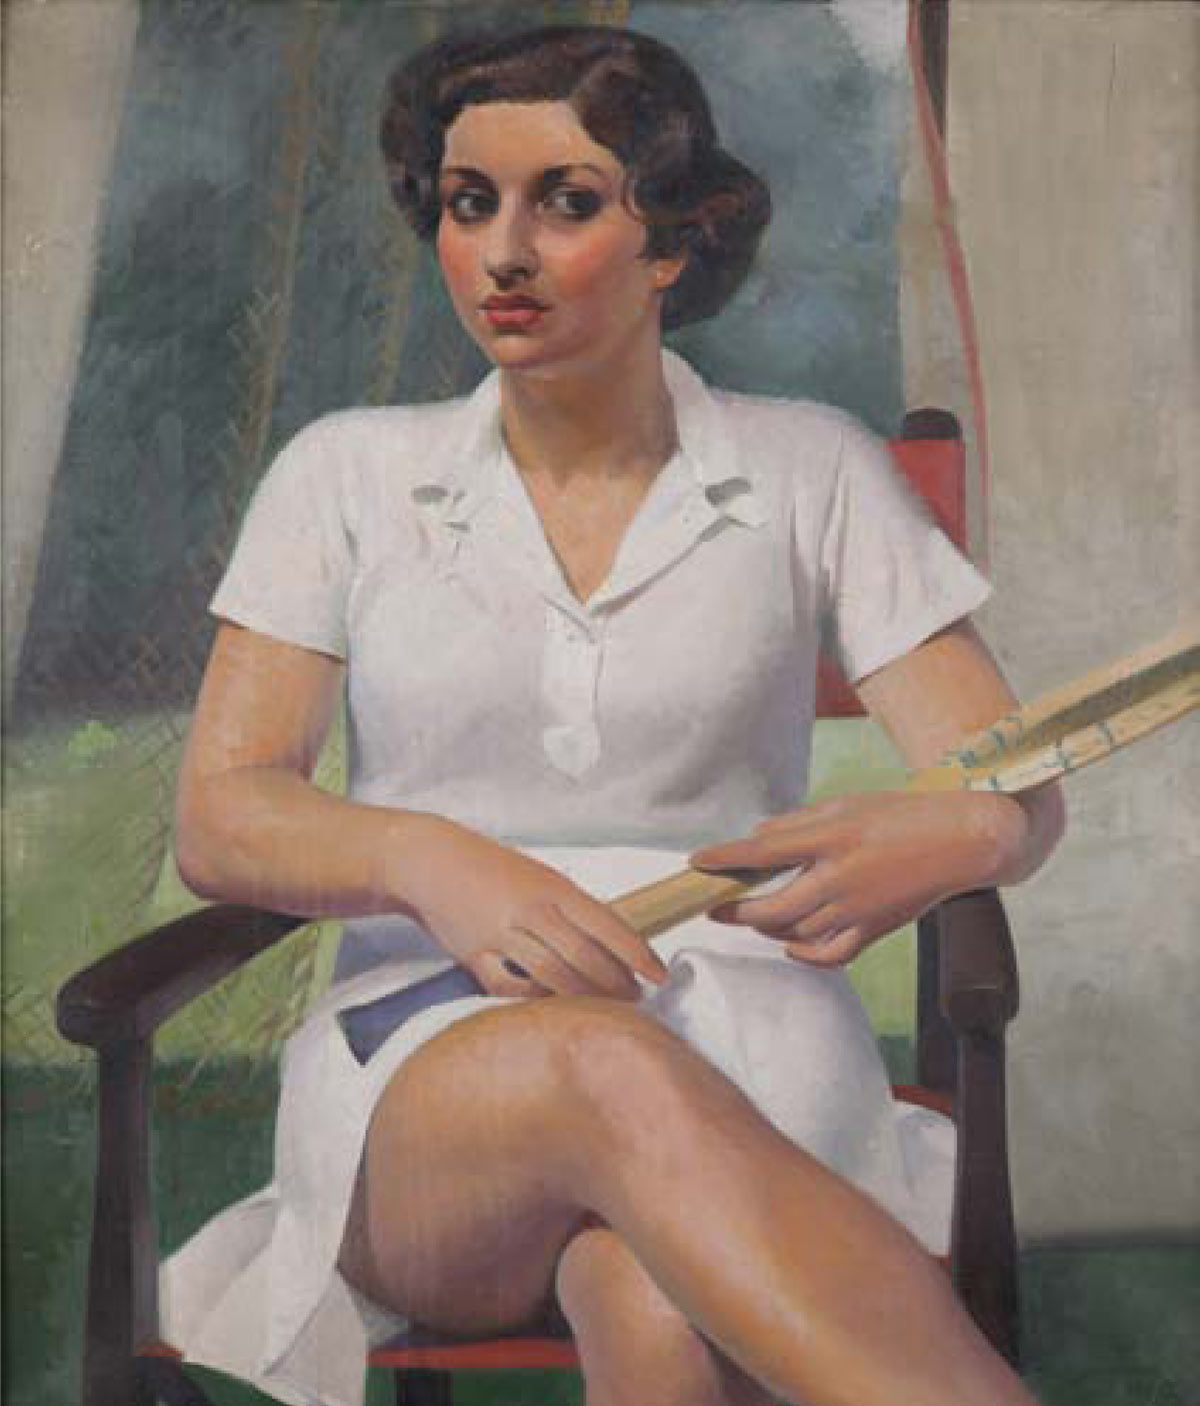 The Tennis Player by Percy Shakespeare (English, 1906 - 1943)